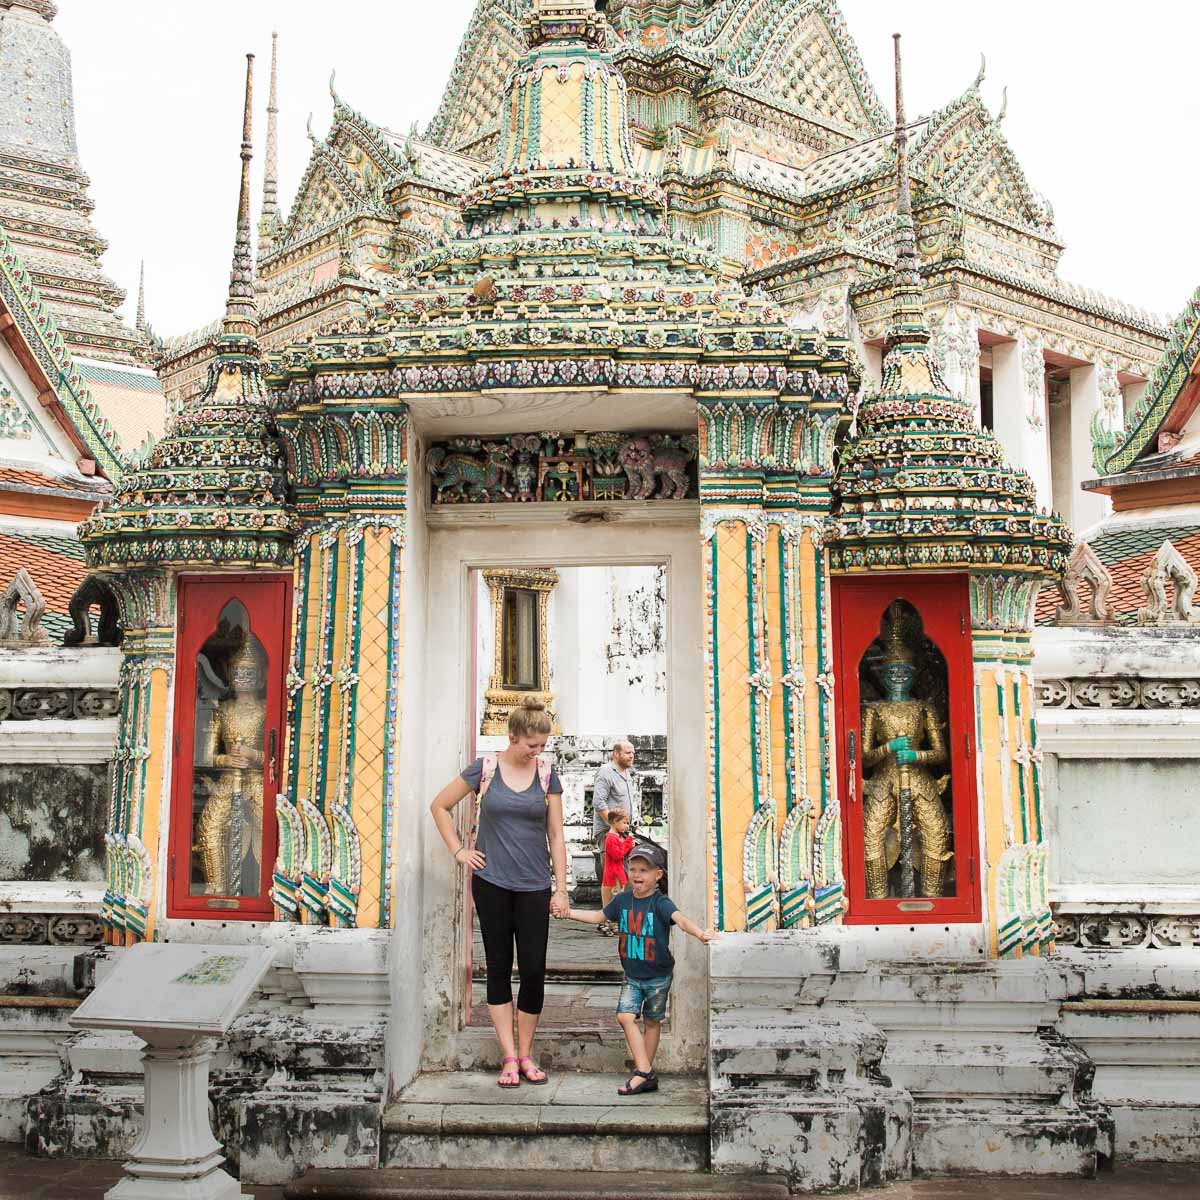 Eline-van-der-Woude-Thailand-Wood-and-Gems-Noah-Bangkok-Travel-reis